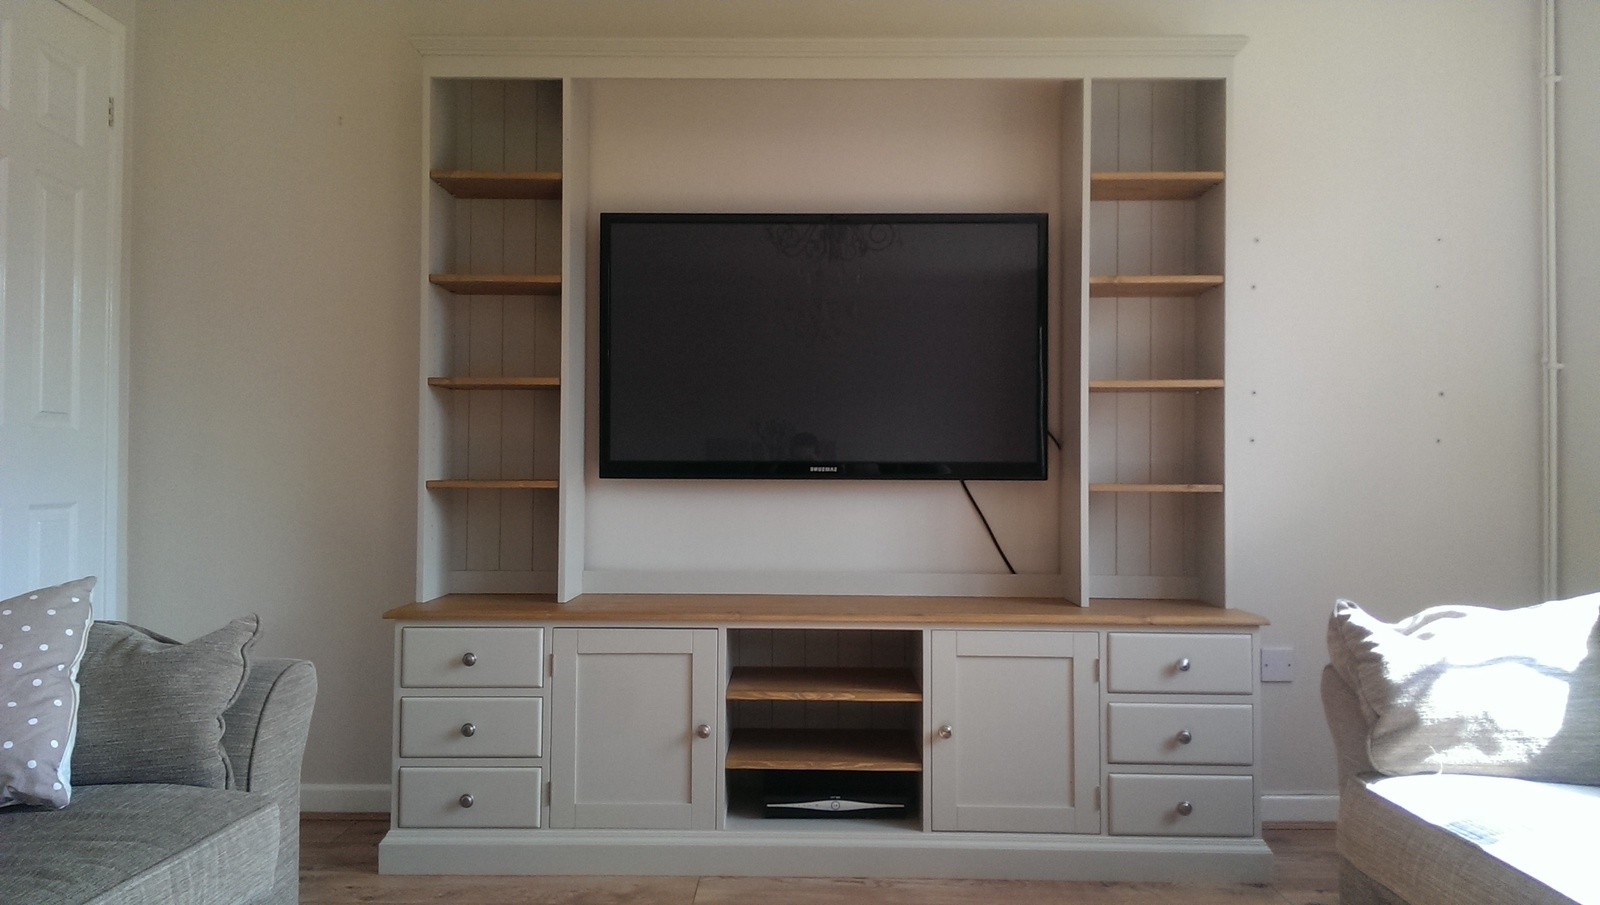 Bespoke Tv Stands Intended For Most Recent Supple Regard To House My Plus Tv Cabinet Wall Mounted With (View 11 of 15)